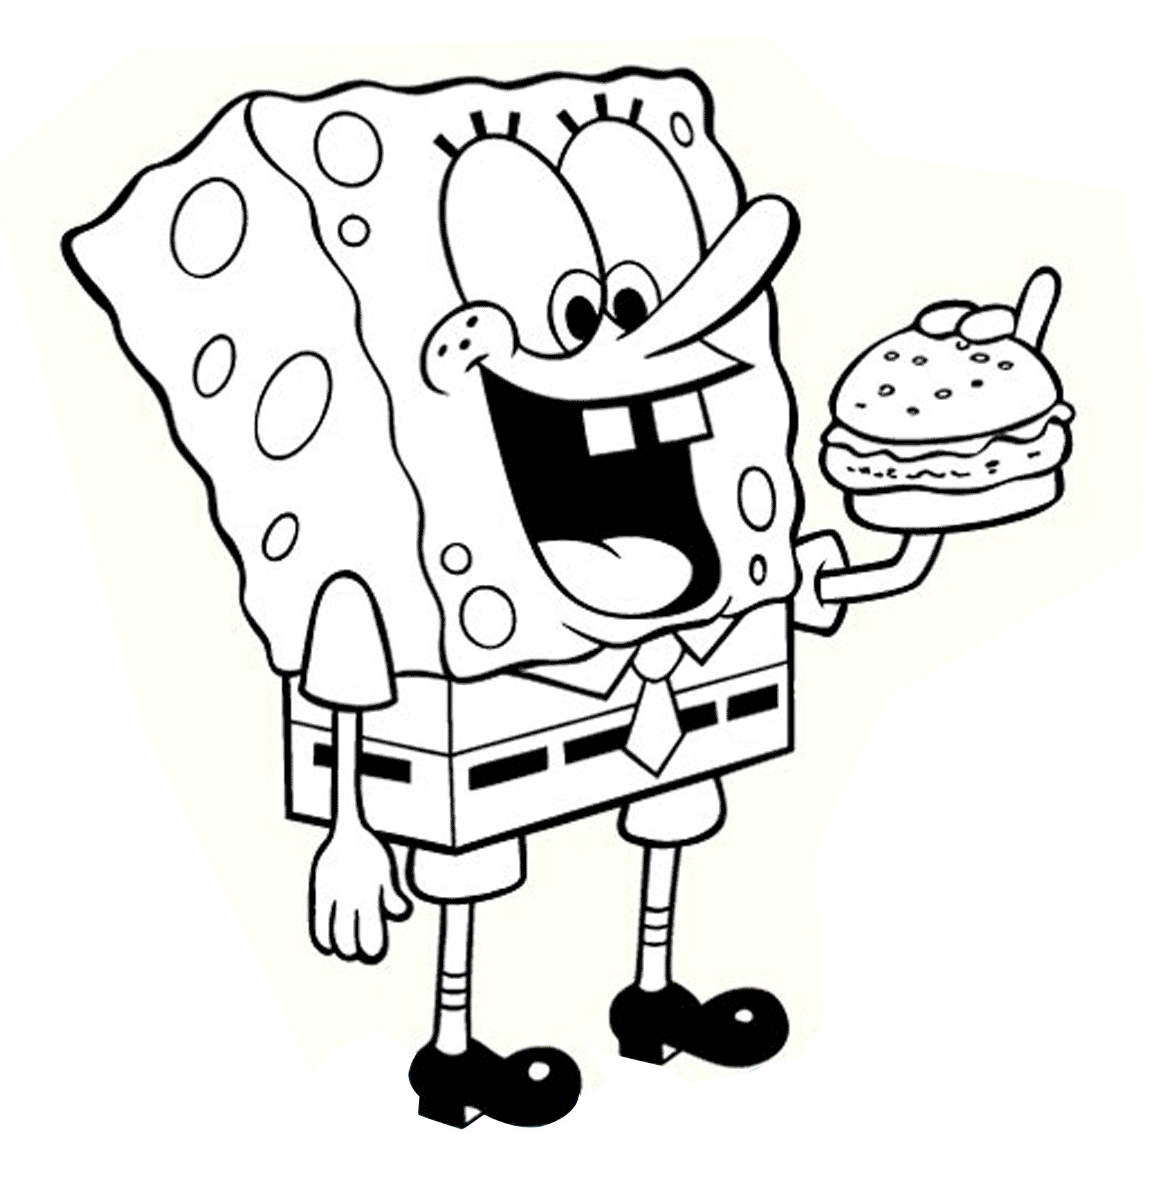 Spongebob Coloring Pages to Print Spongebob Coloring Pages Free